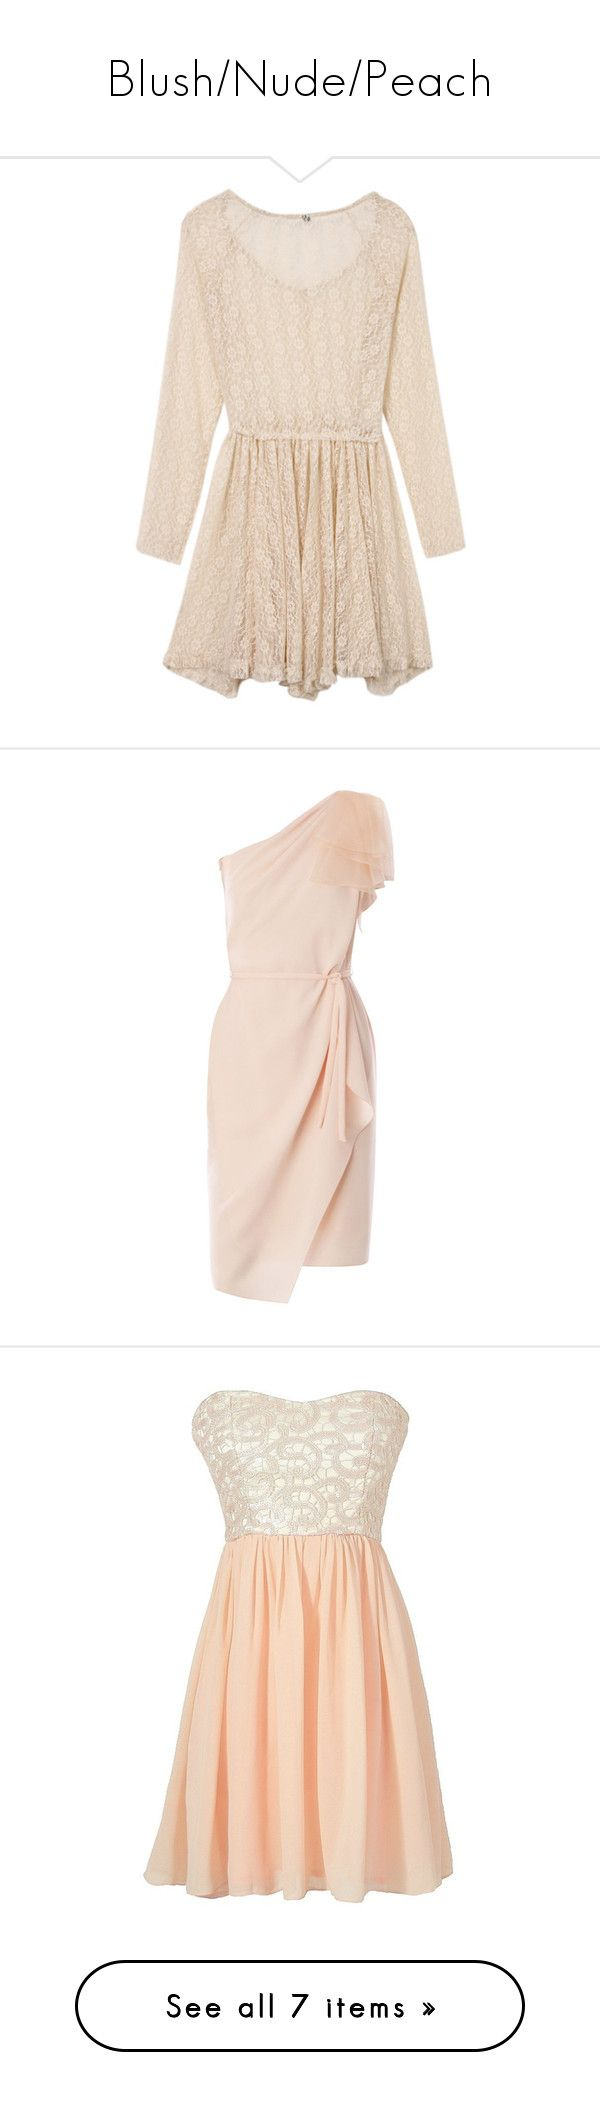 """""""Blush/Nude/Peach"""" by whims-and-craze ❤ liked on Polyvore featuring dresses, lace dress, long sleeve mini dress, pink lace dress, pink long sleeve dress, short lace dress, vestidos, vestiti, pink and maxmara"""